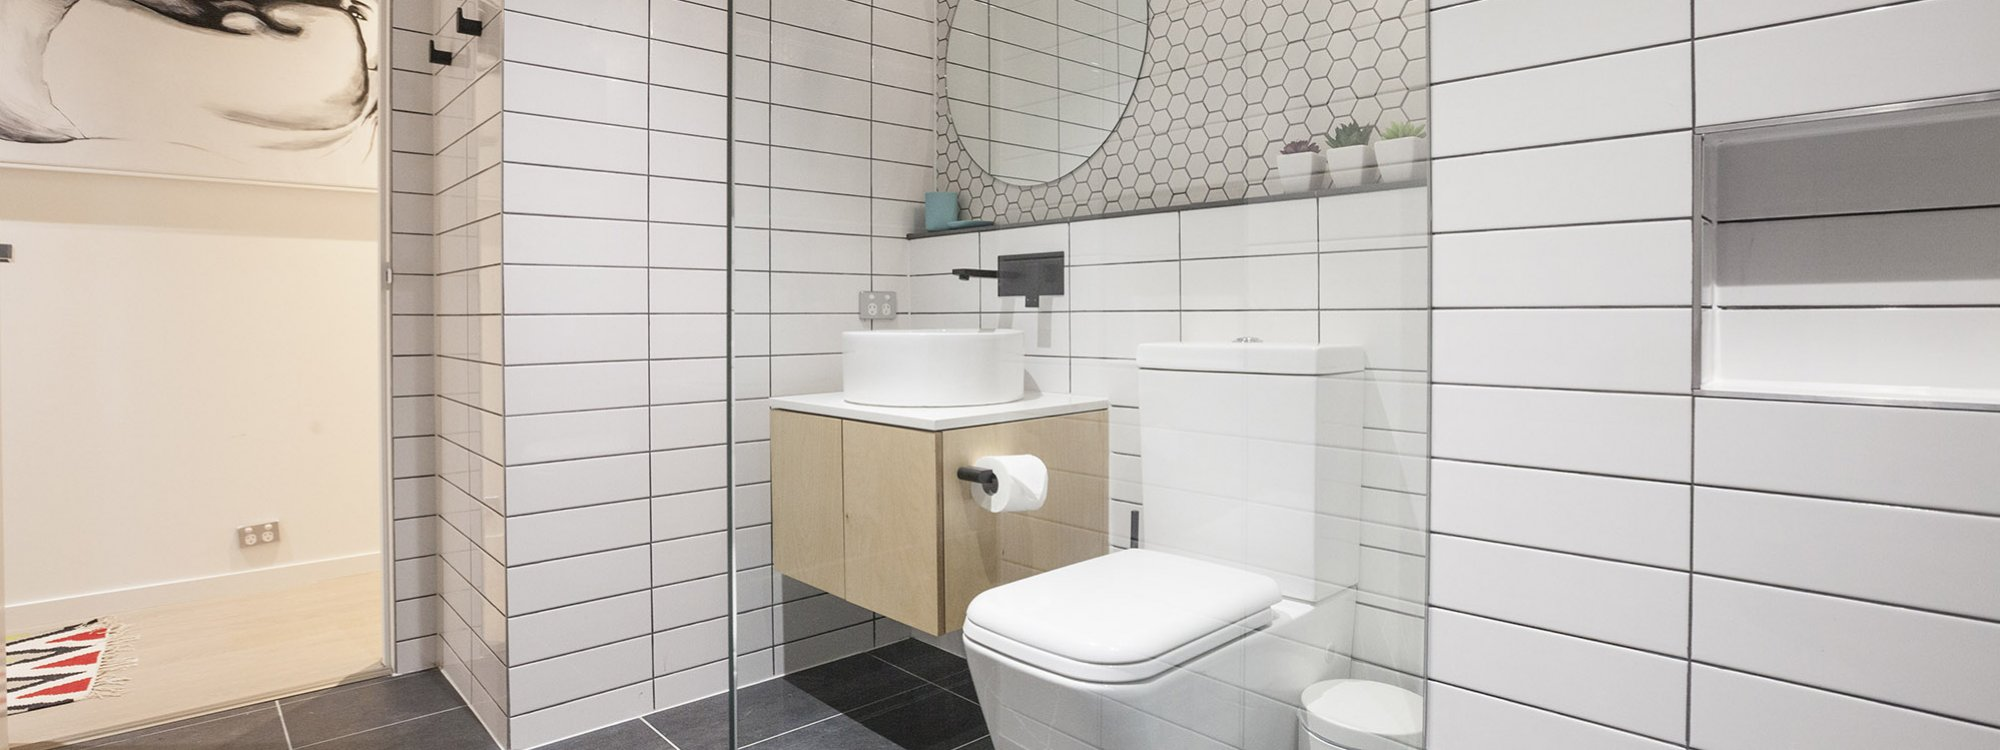 Vox Terrace - Prahran - Bathroom b